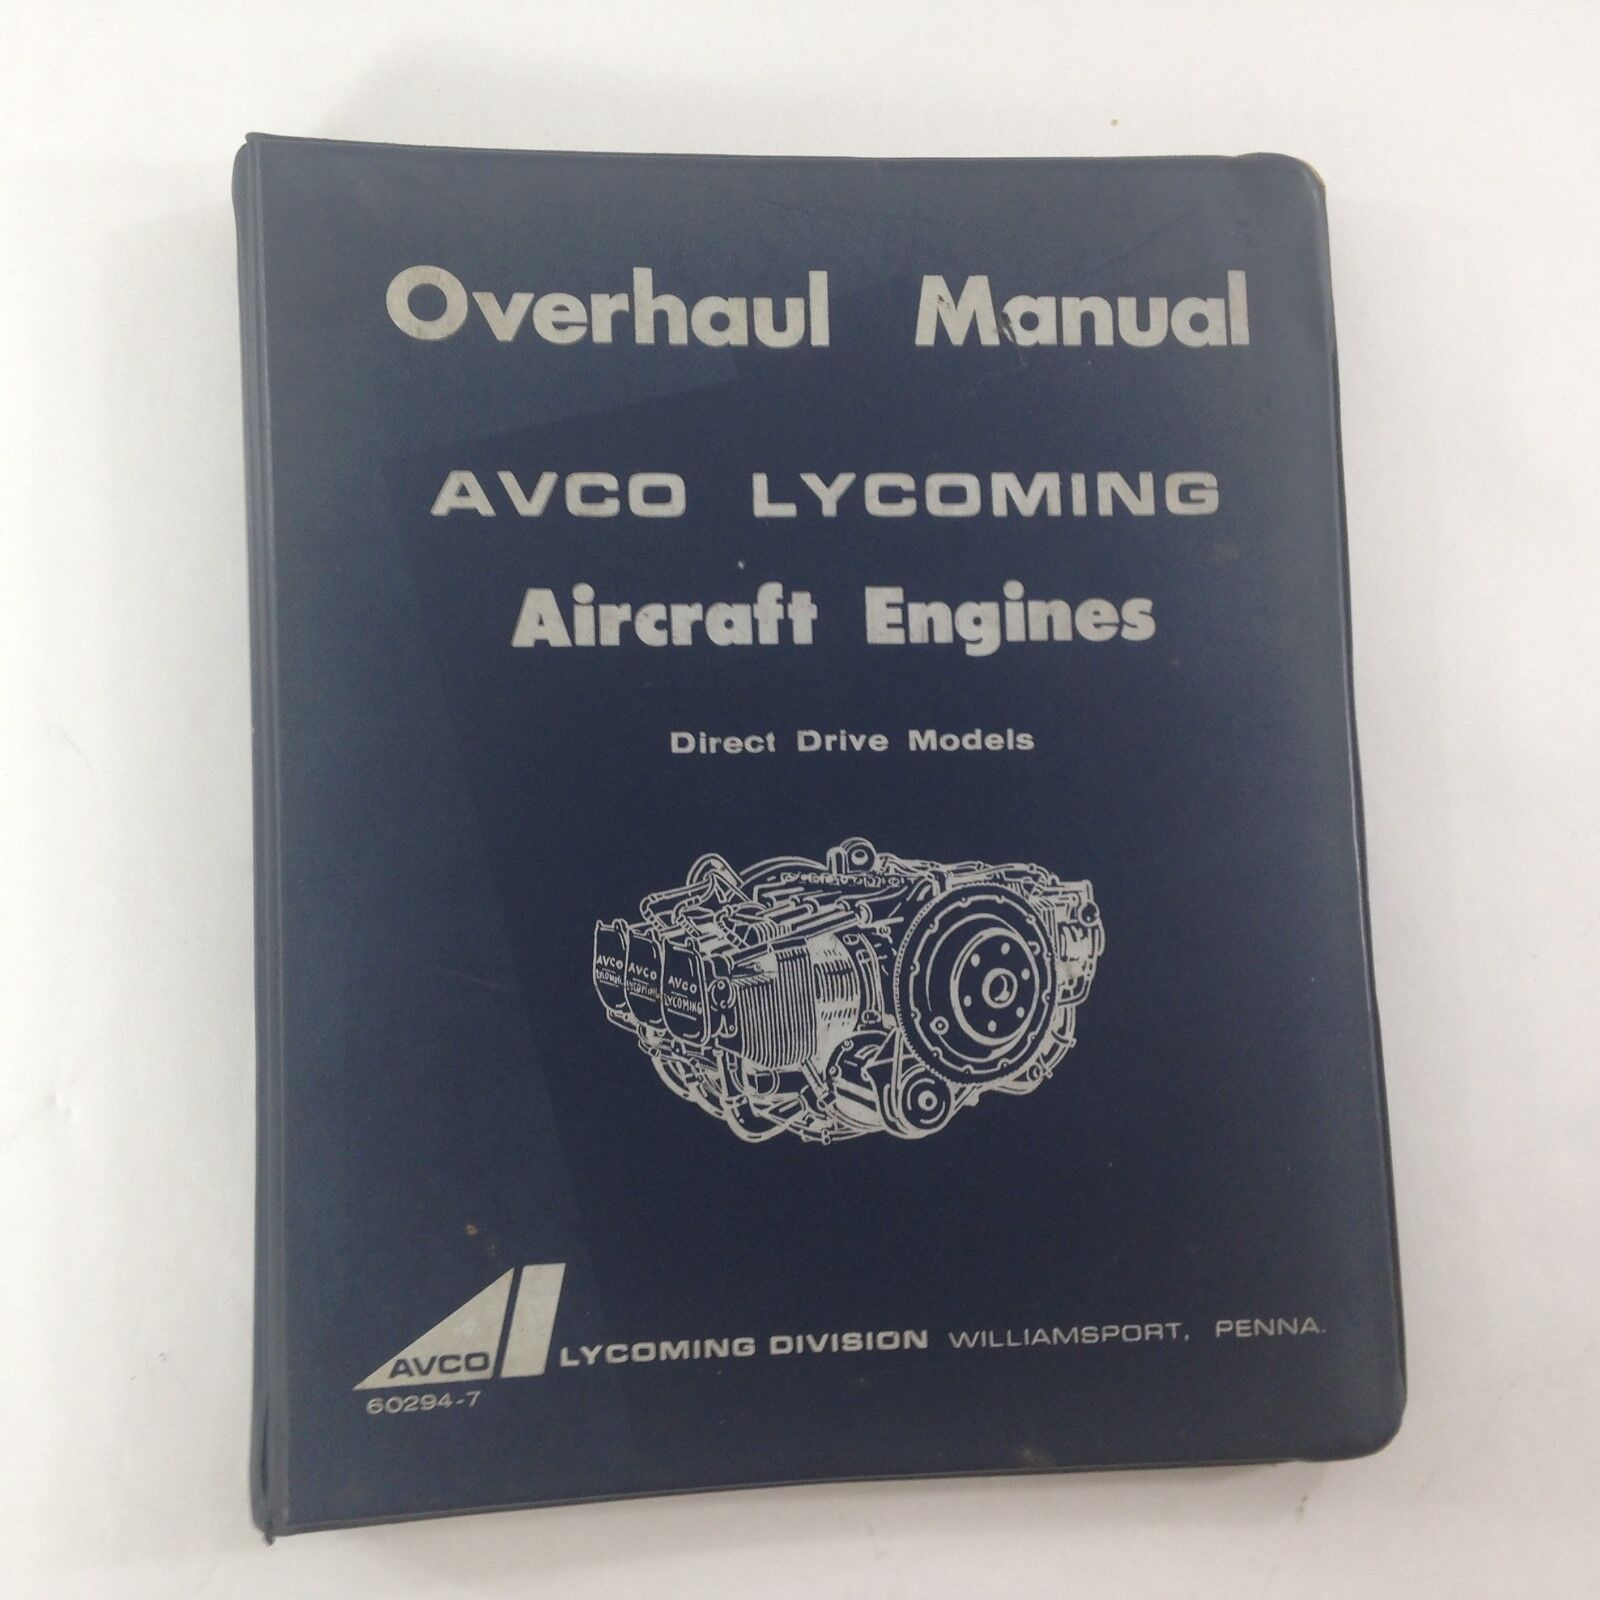 AVCO LYCOMING OVERHAUL MANUAL AIRCRAFT ENGINES 1968